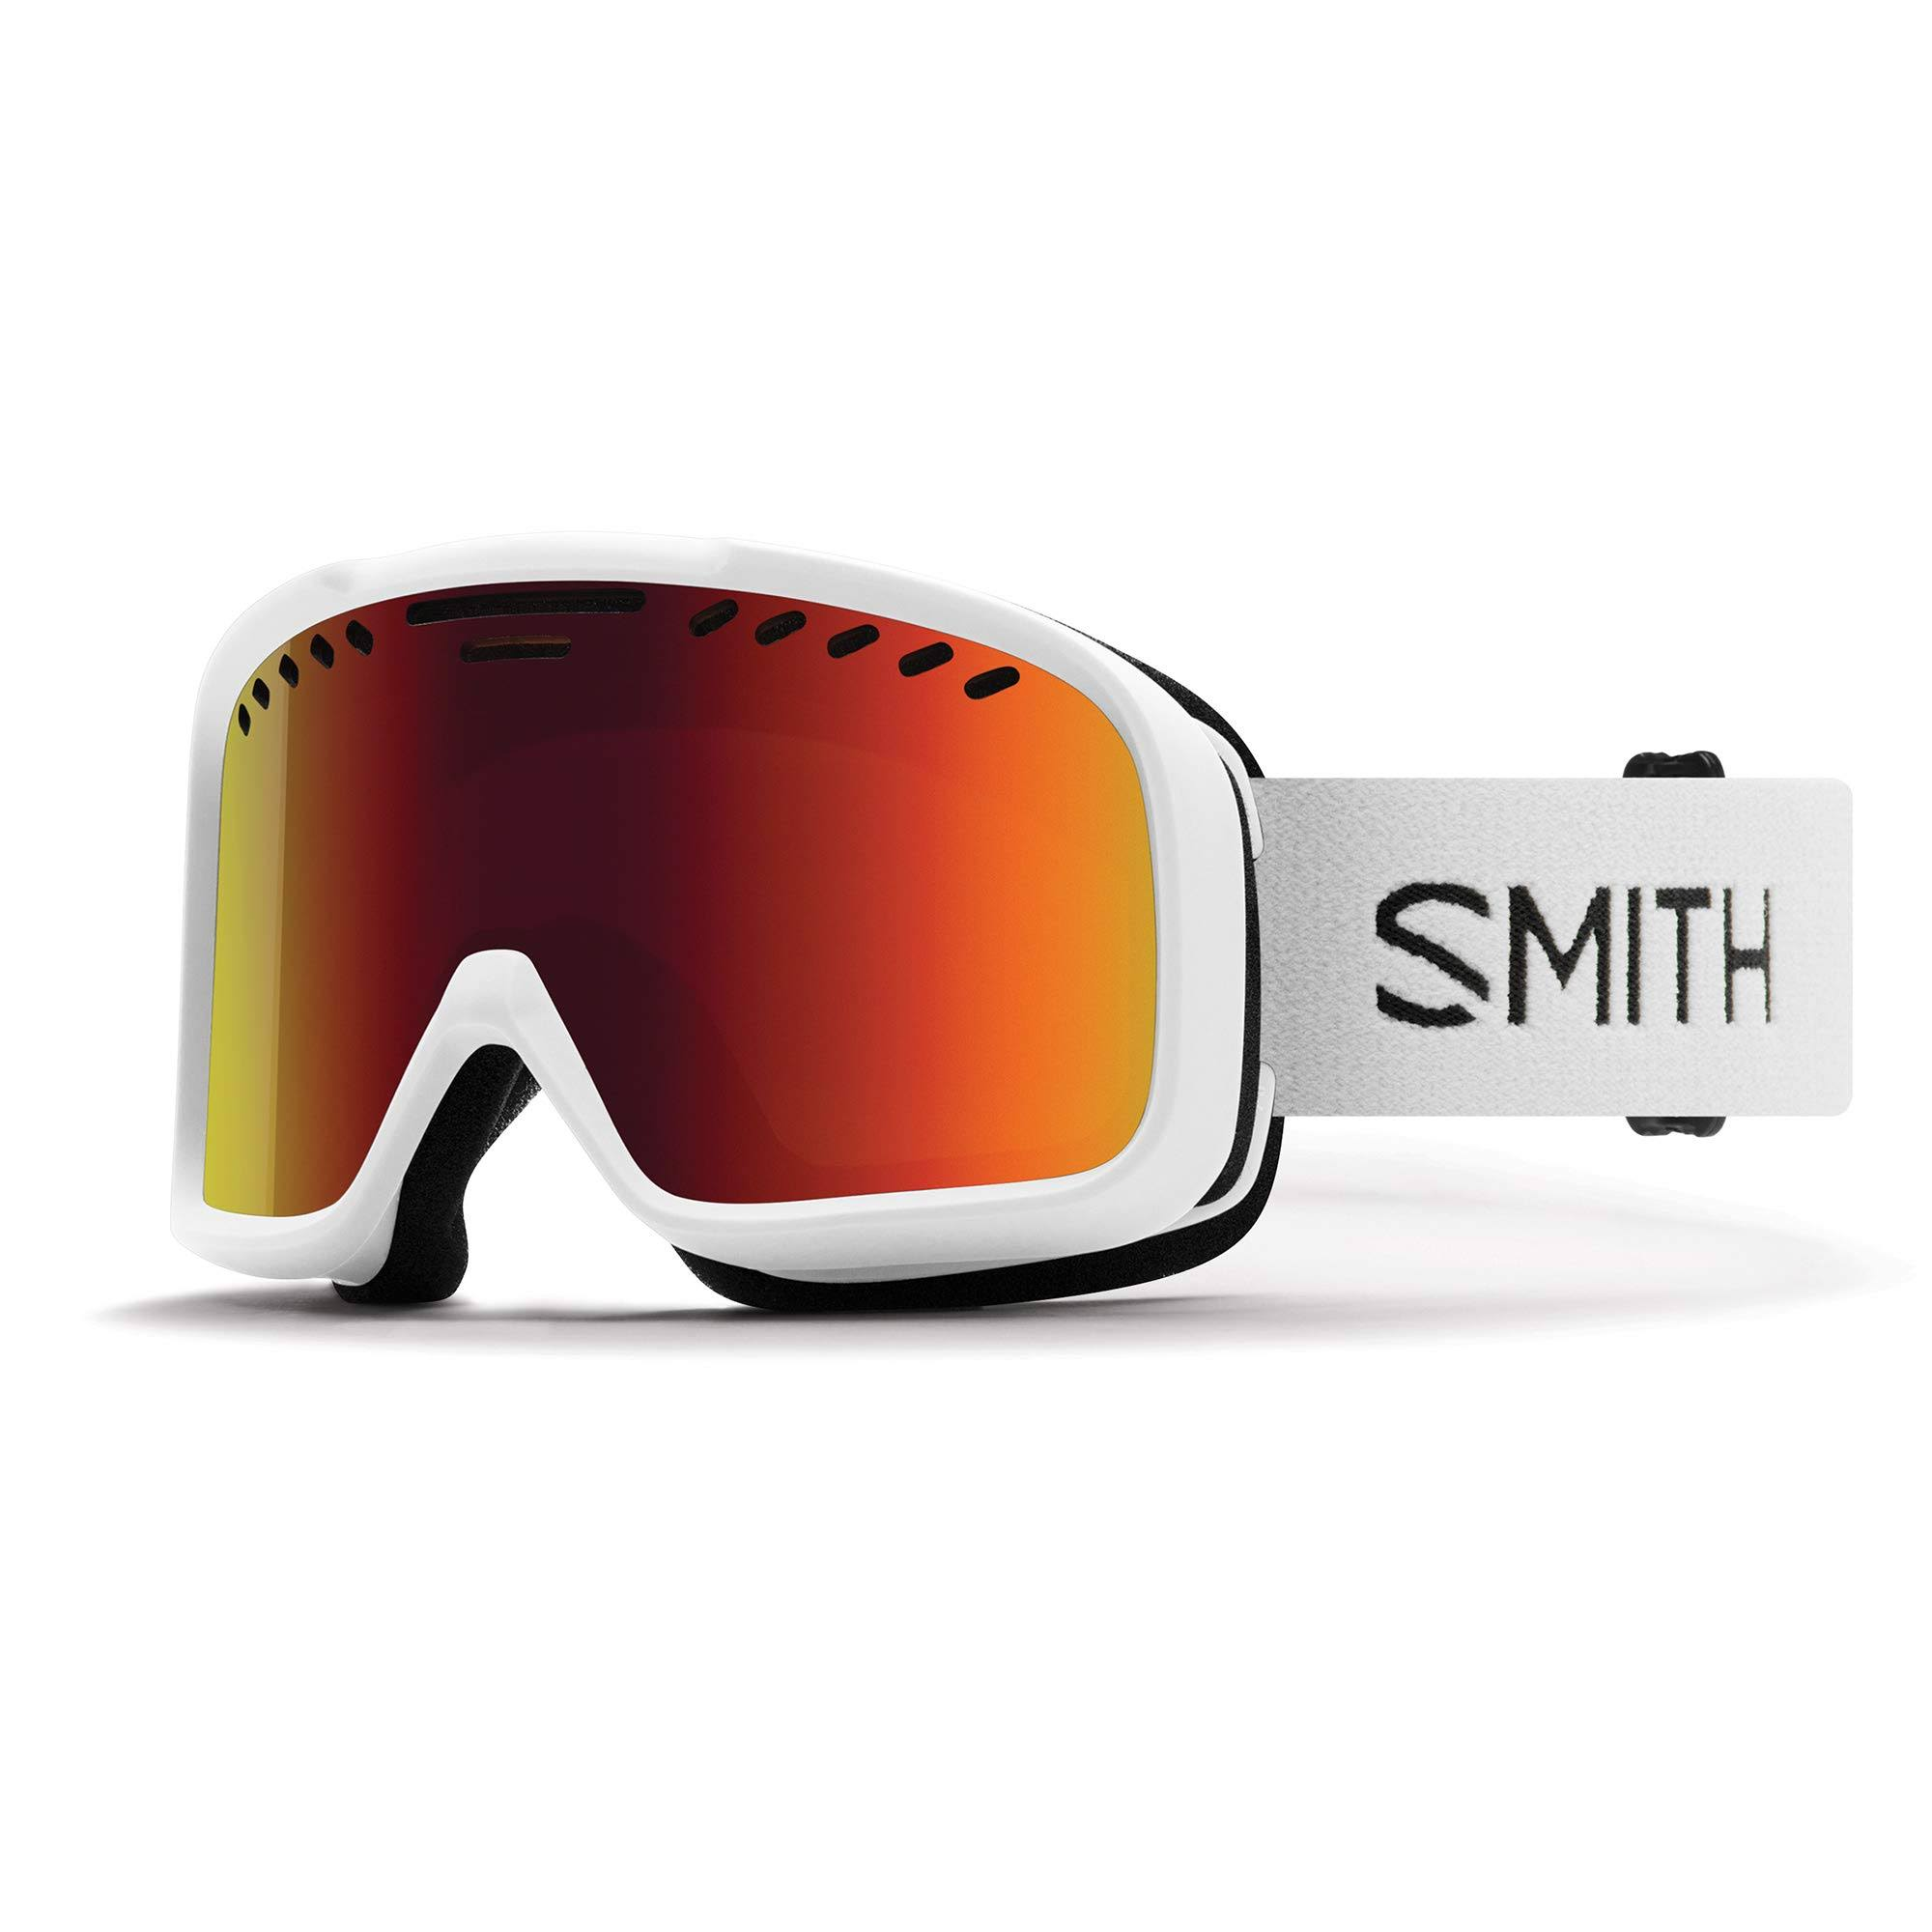 Smith Project Ski Goggles - White / Red Sol-X Mirror